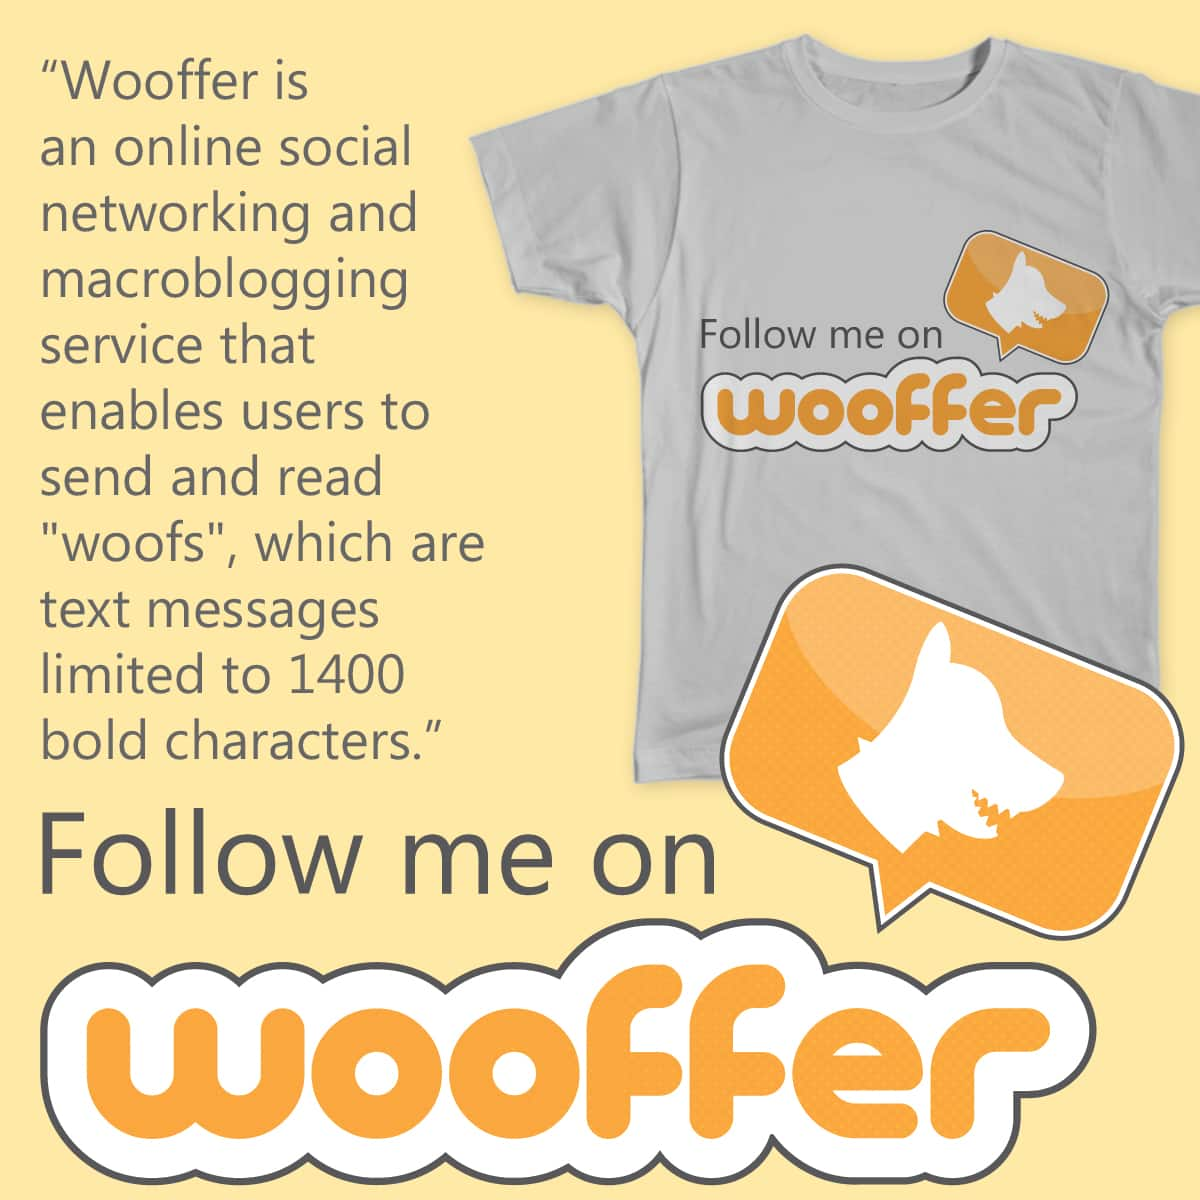 Follow me on Wooffer by mxclouti on Threadless